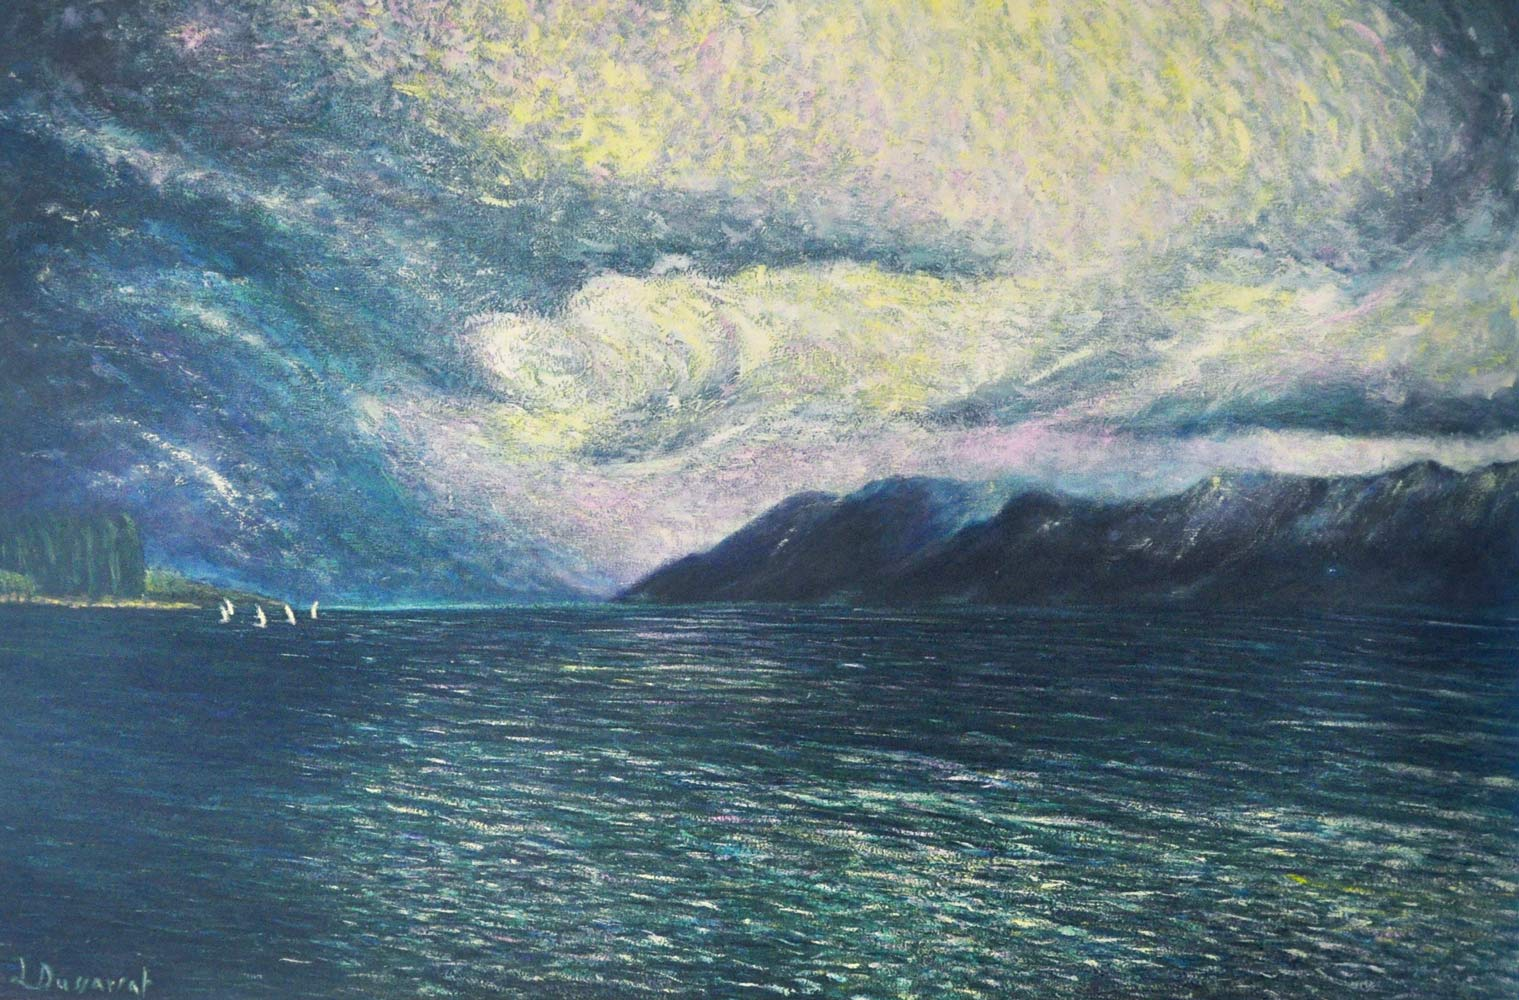 Before the storm, Lutry. Oil on canvas, 80x120, 2017